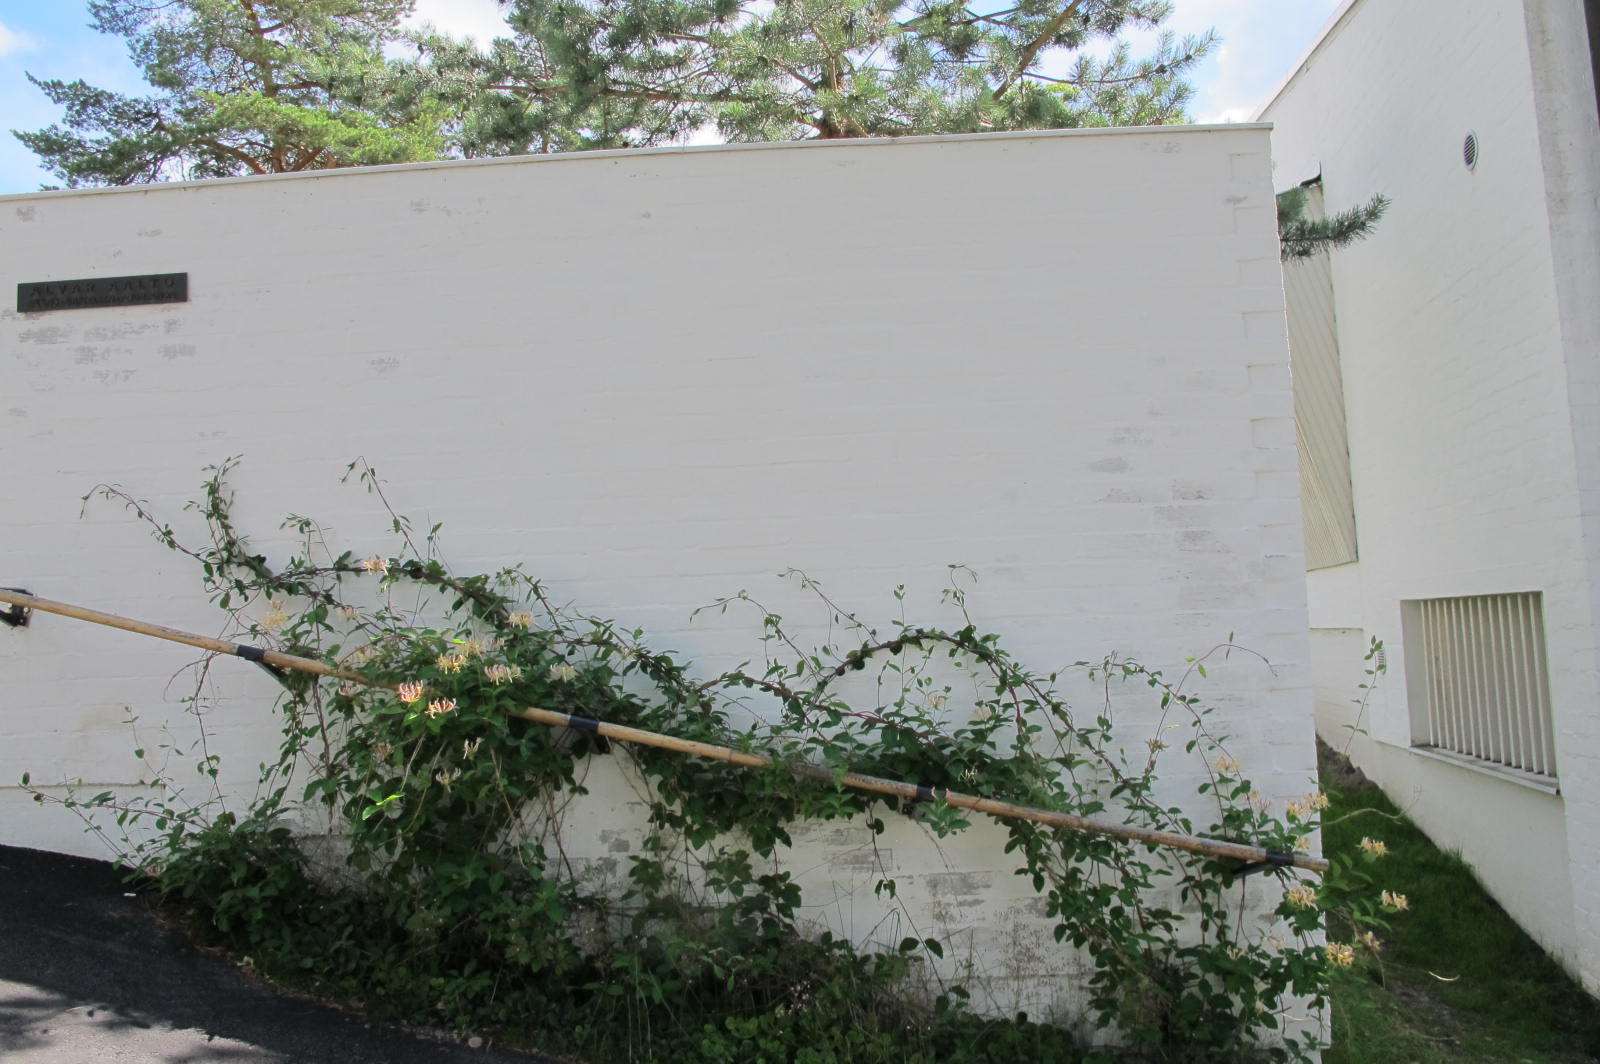 Entry rail covered in flowers / Studio Aalto / 11 July 2015